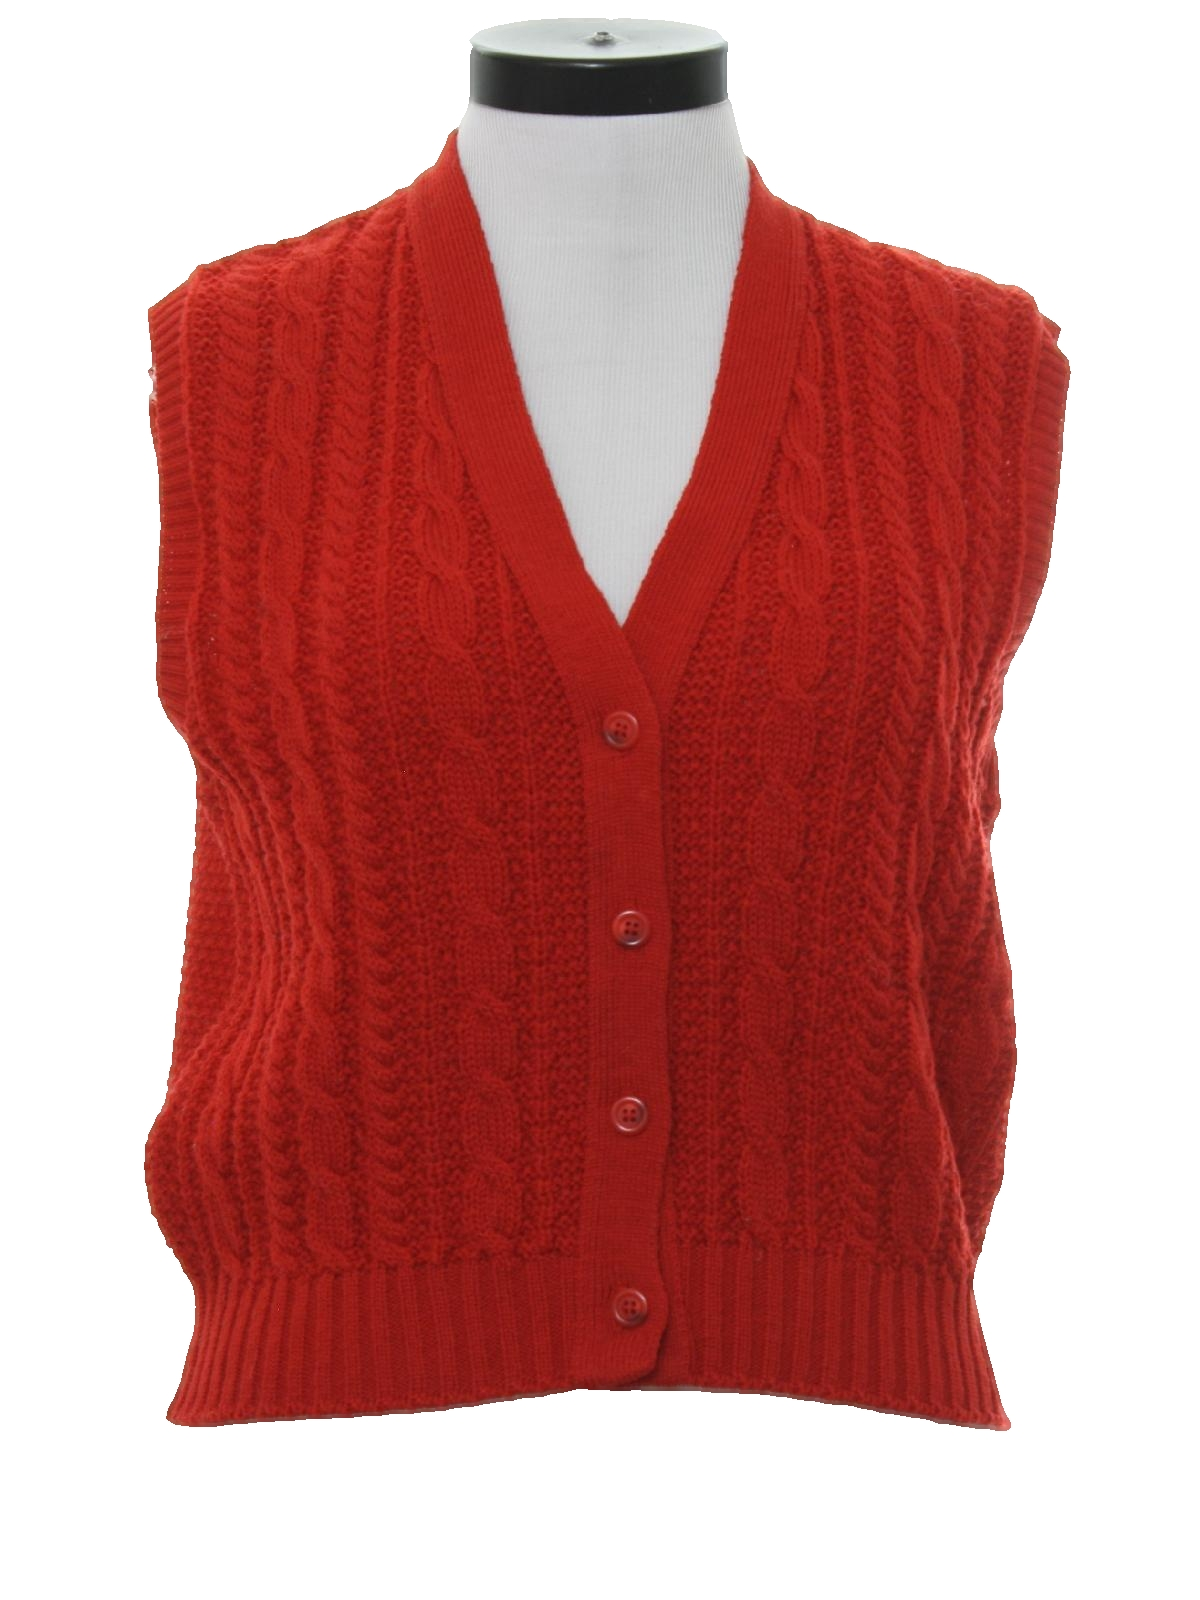 Knitting Vest For Women : S vintage sweater pendleton womens cable knit